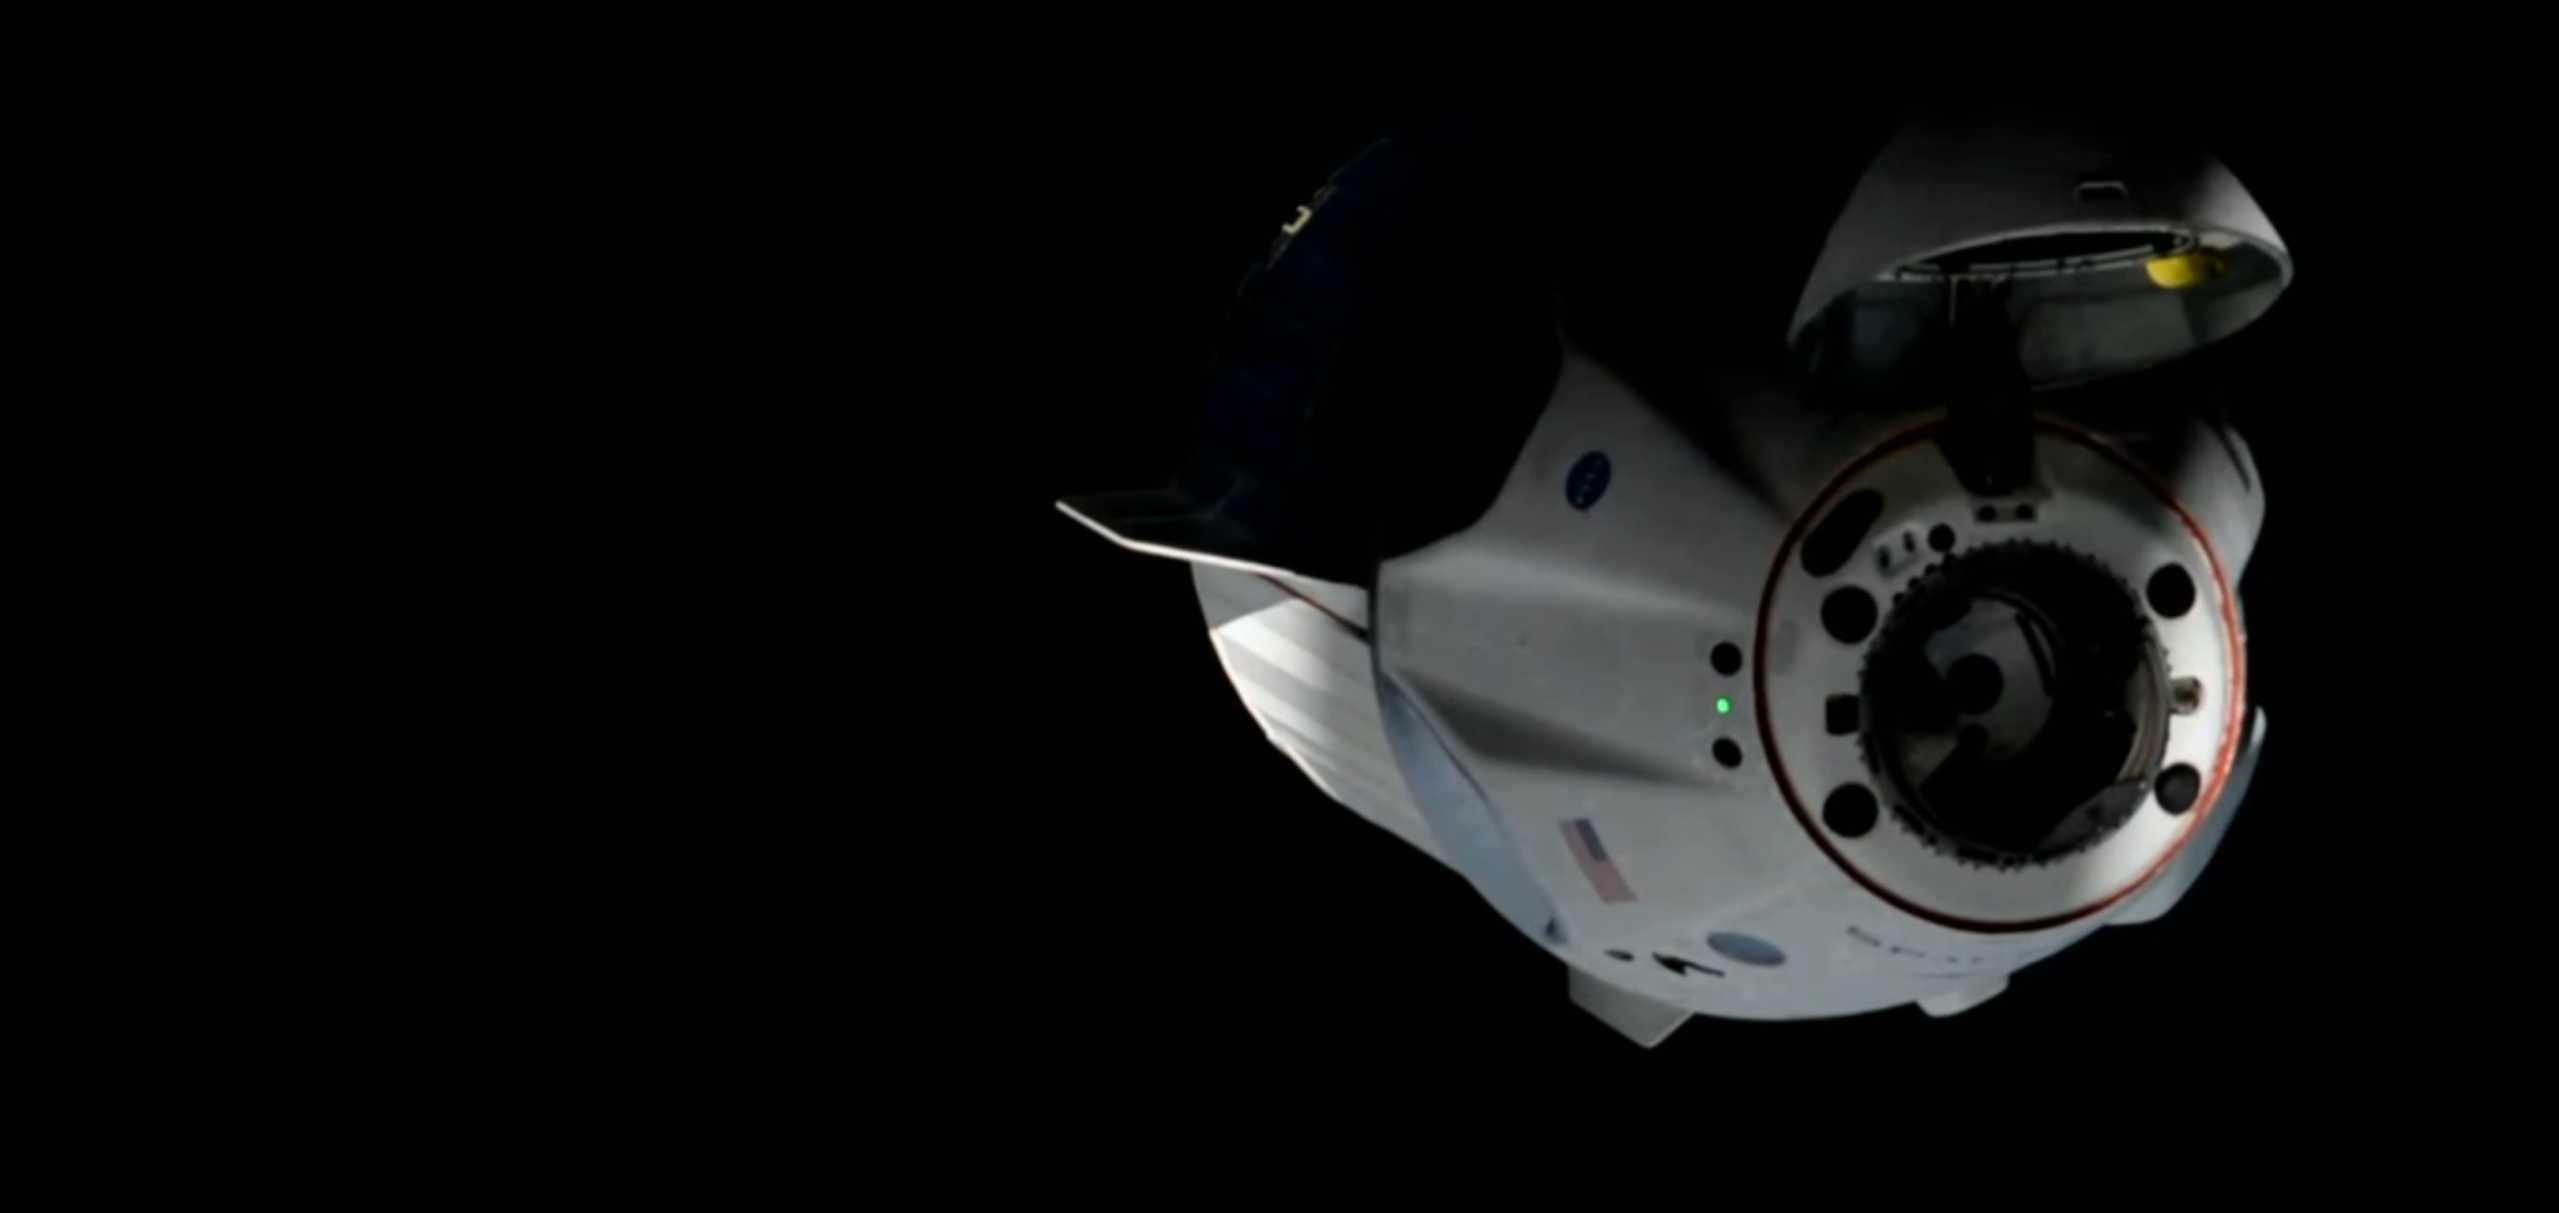 Crew Dragon C206 F9 B1058 Demo-2 053120 ISS arrival webcast (SpaceX) 12 (c)